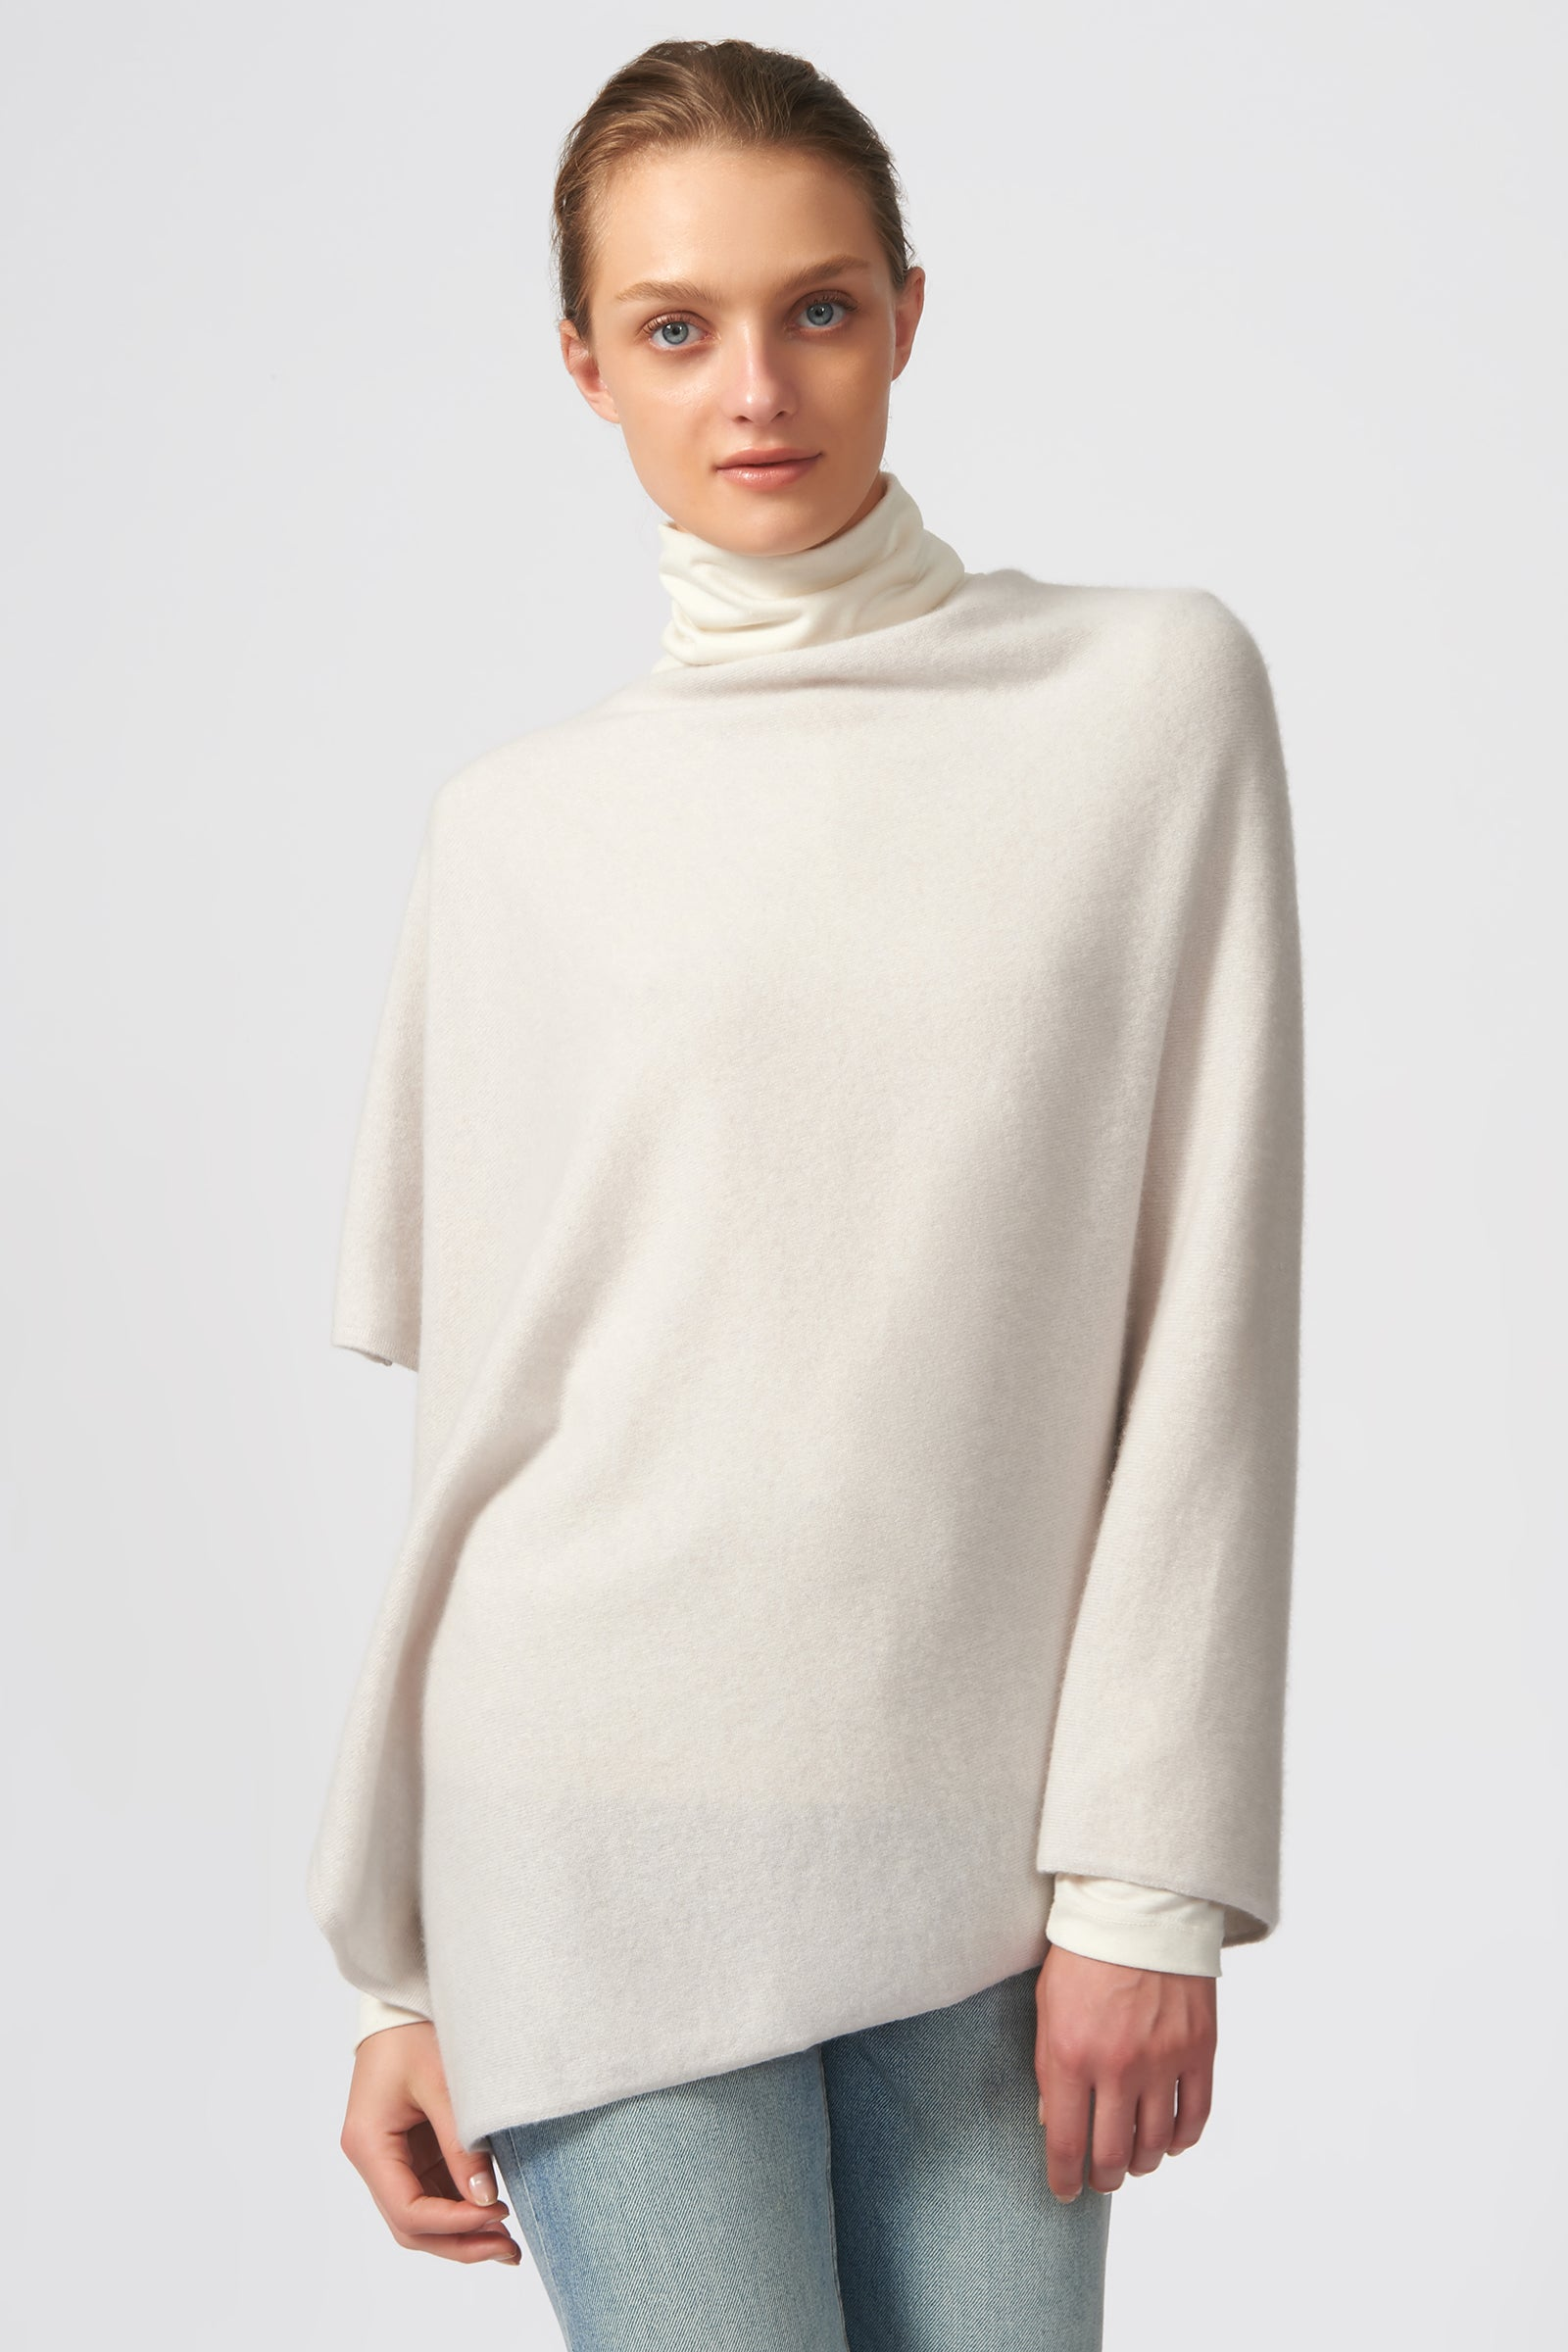 Kal Rieman Cashmere Poncho in Haze on Model Front View